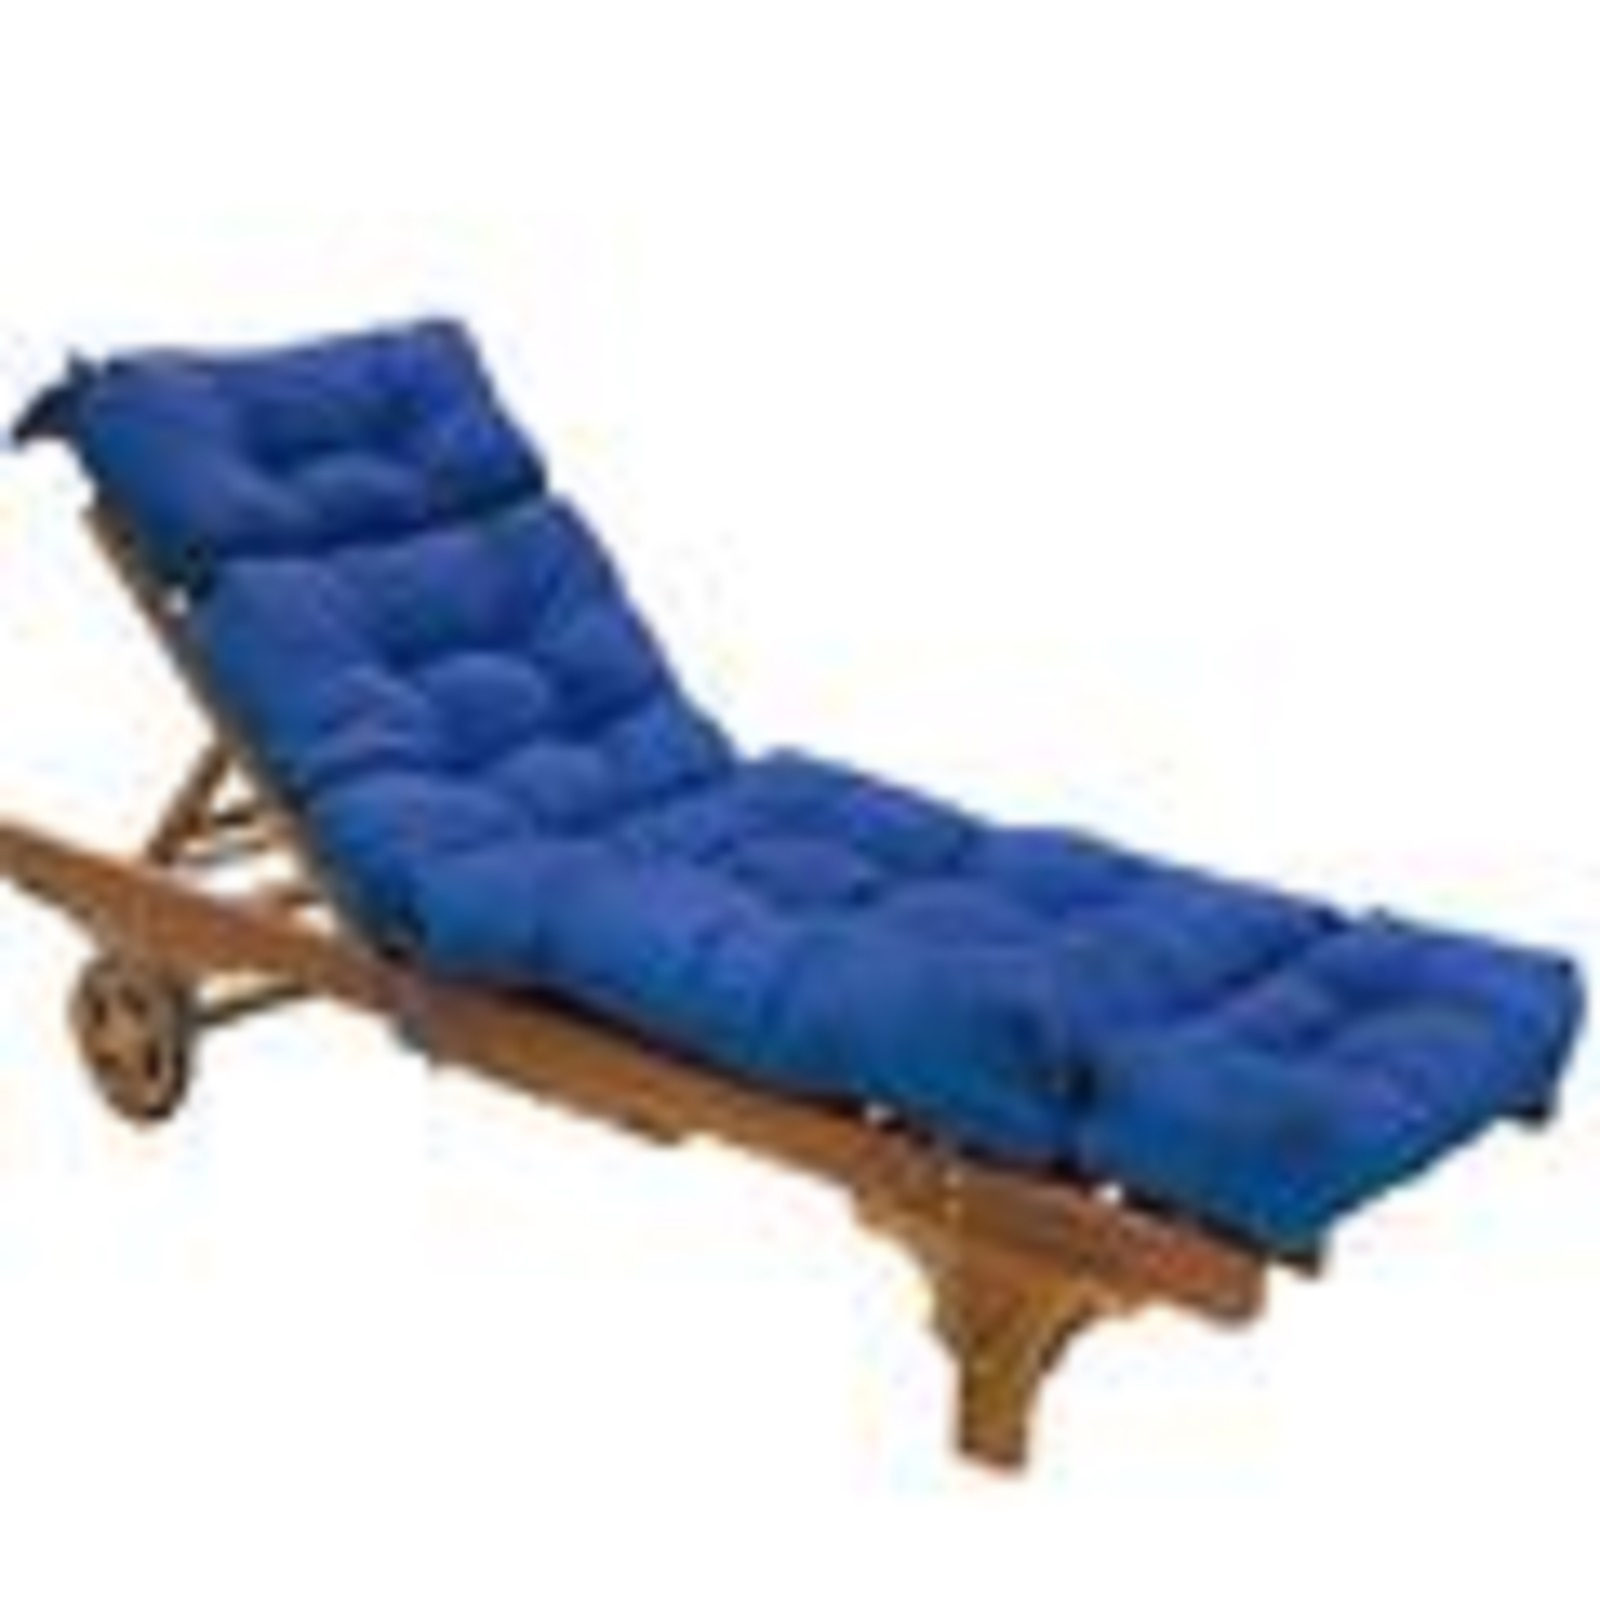 Greendale Home Fashions 72 inch Patio Chaise Lounger Cushion, Capri Blue